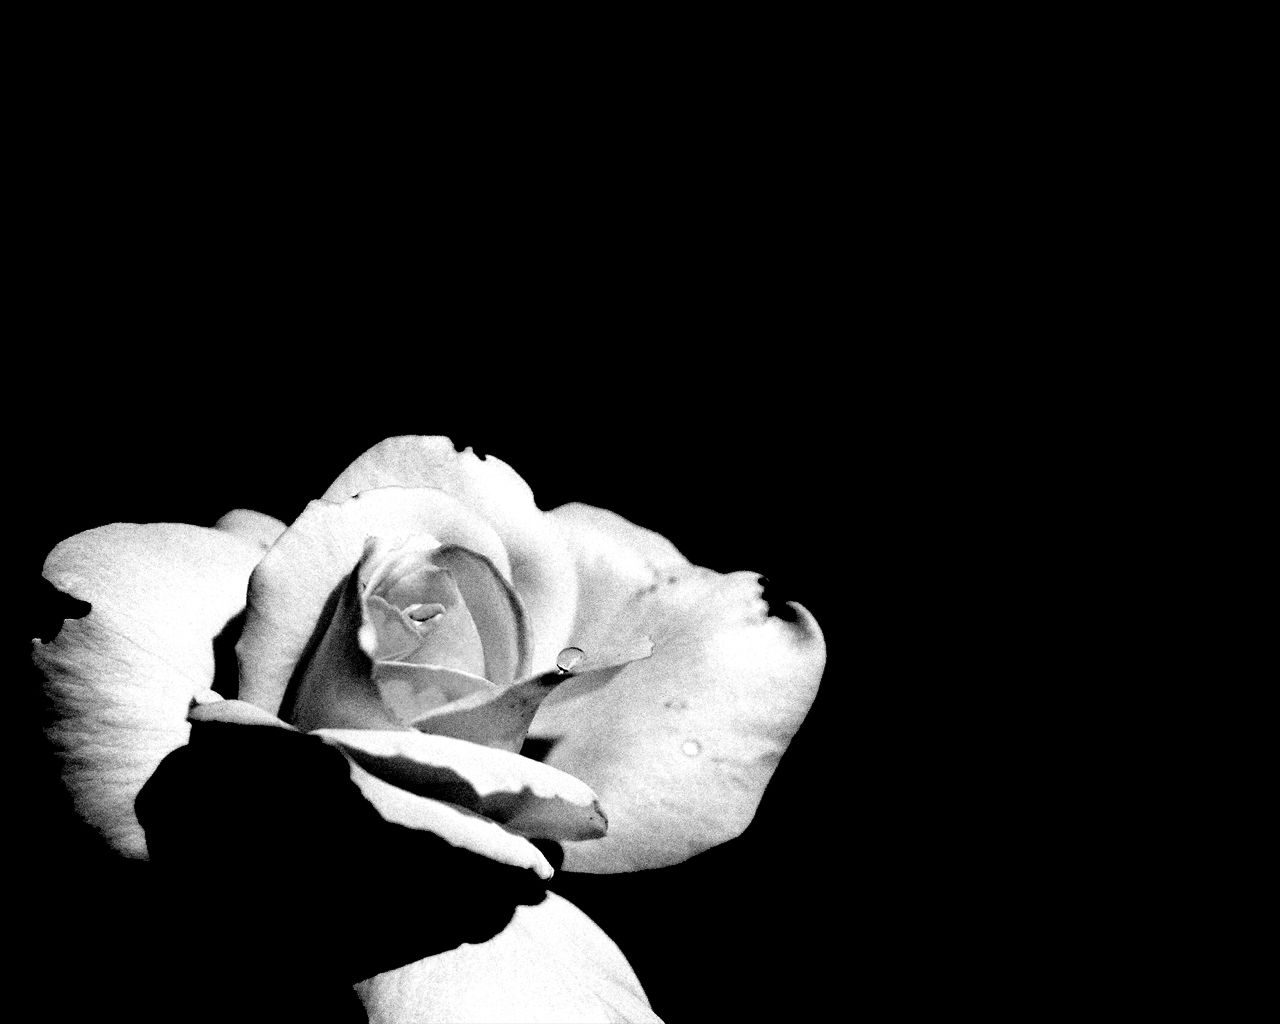 wallpapers background black and white wallpapers - Black And White Flowers